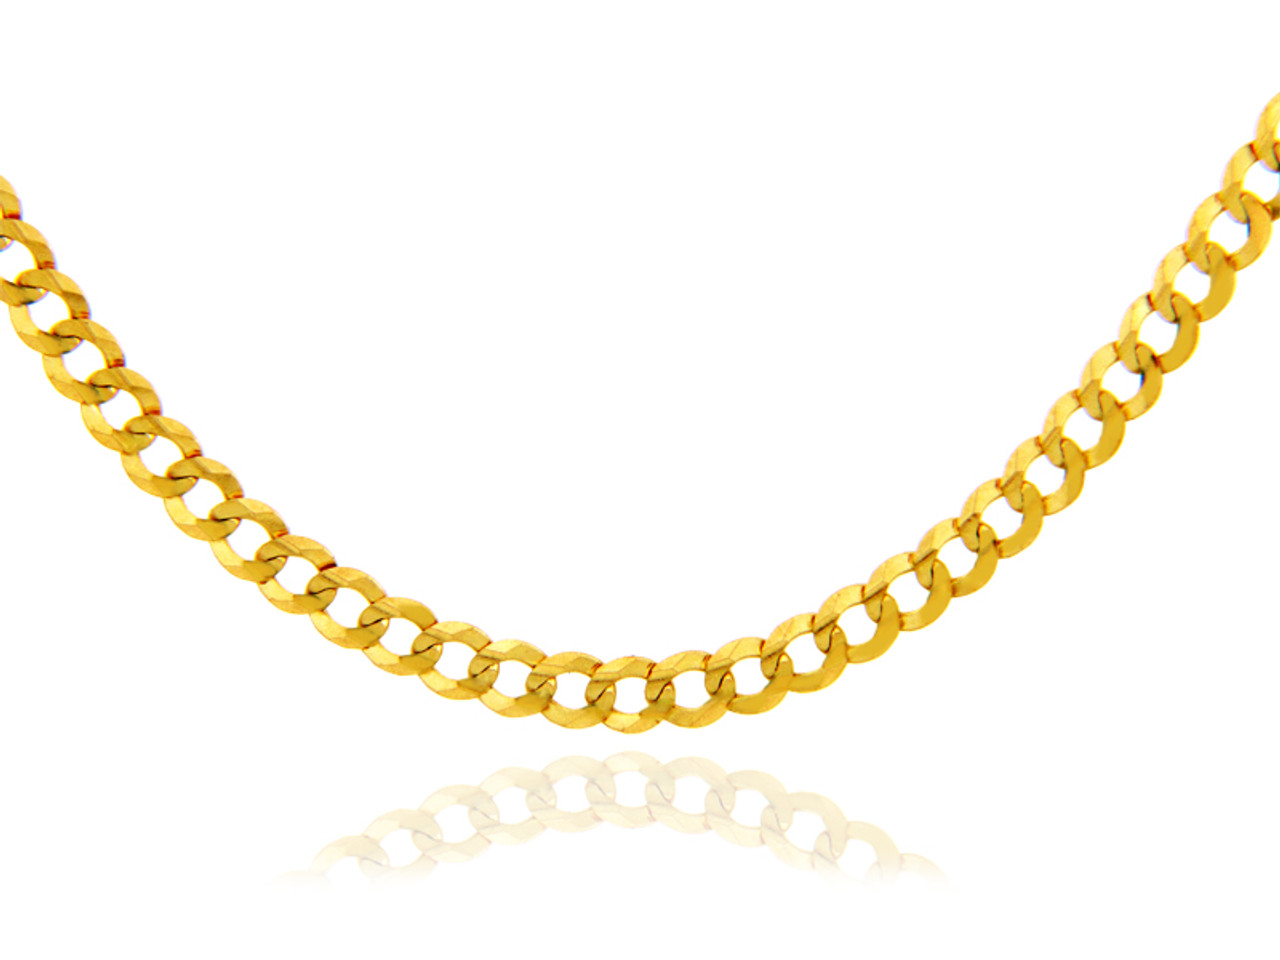 long hip chains gold necklace plated item rock jewelry necklaces color trendy men hop glod